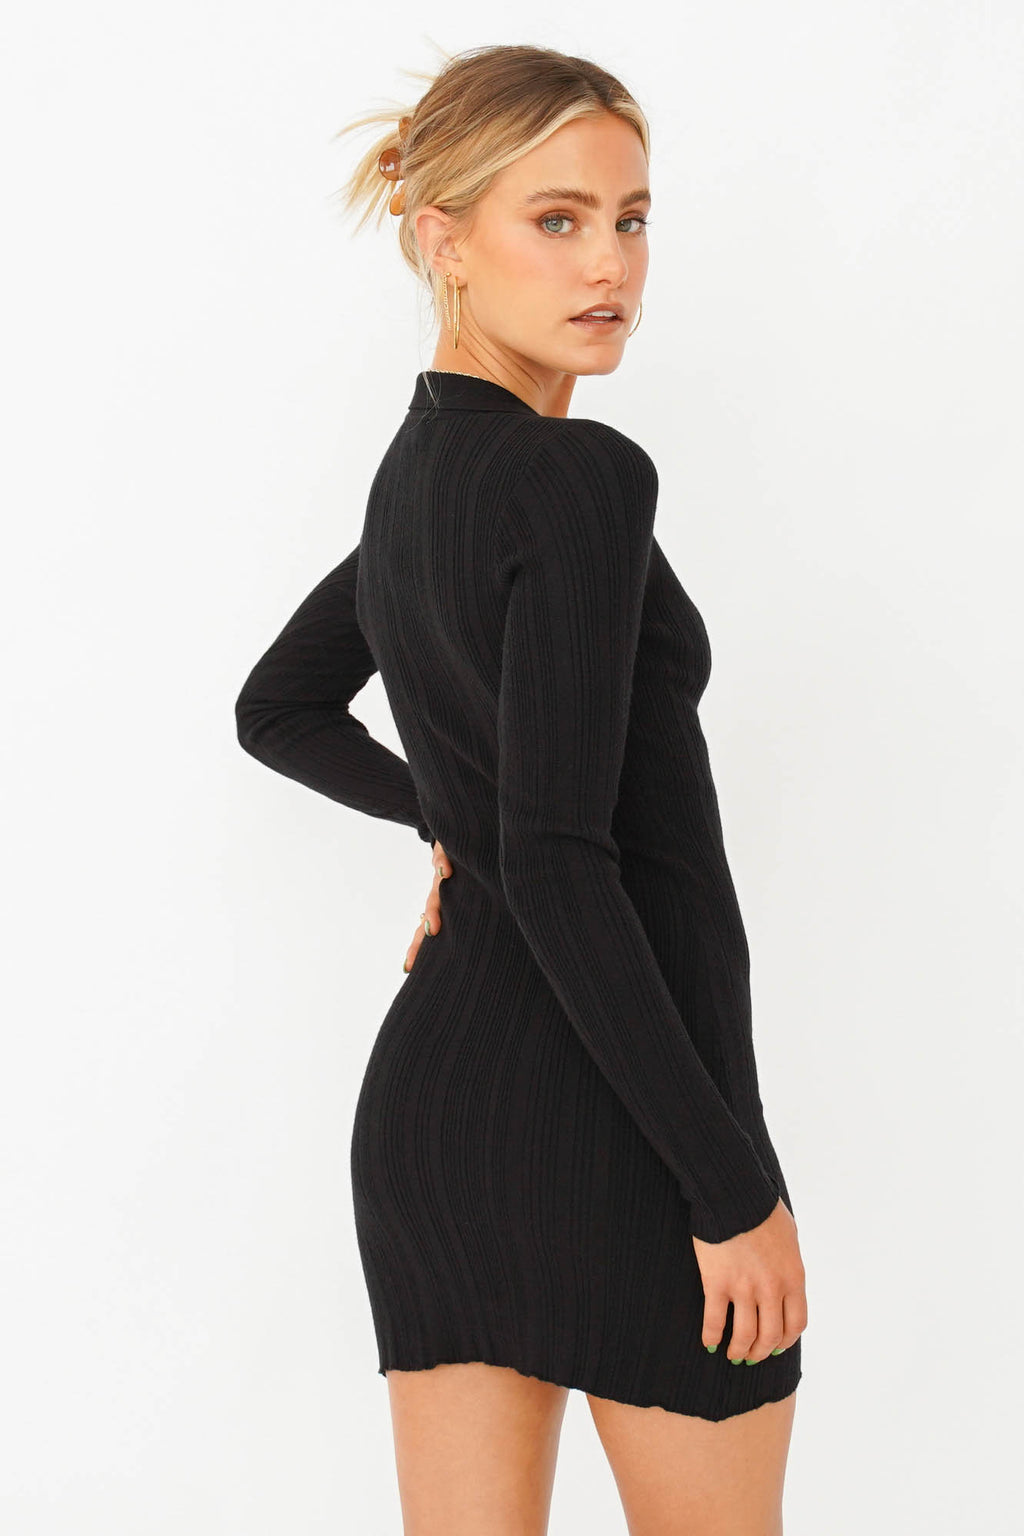 All She Wants Button Front Knit Top // Black